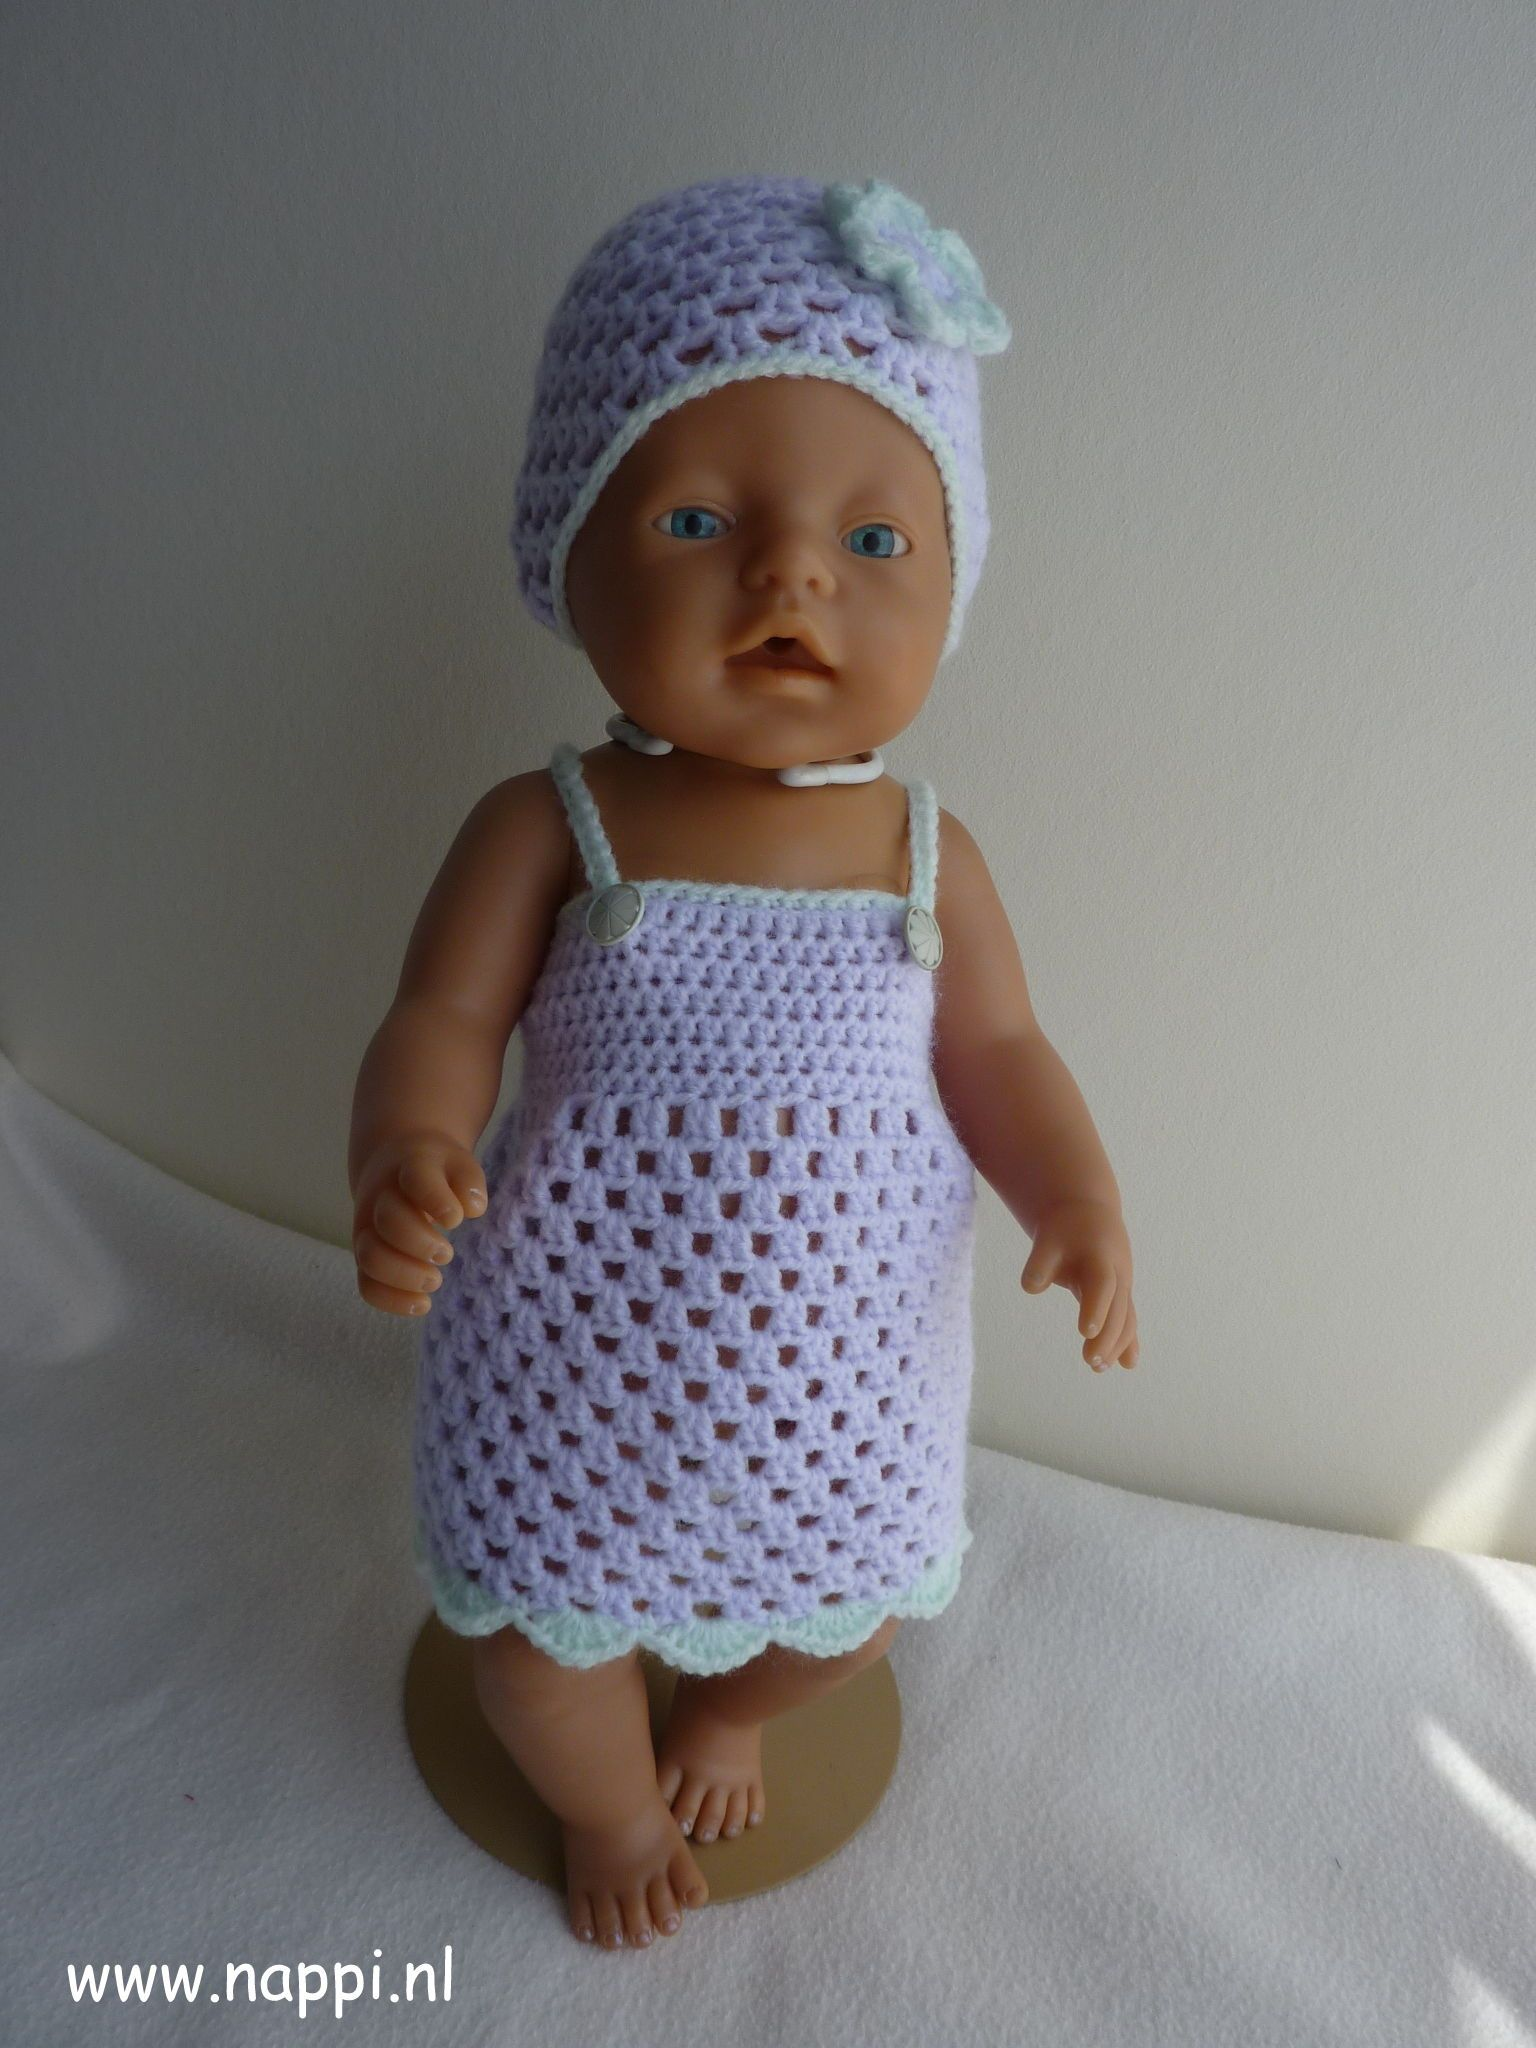 Zomerkleding / Baby Born 43 cm | Nappi.nl patroon Riannes haaksels ...